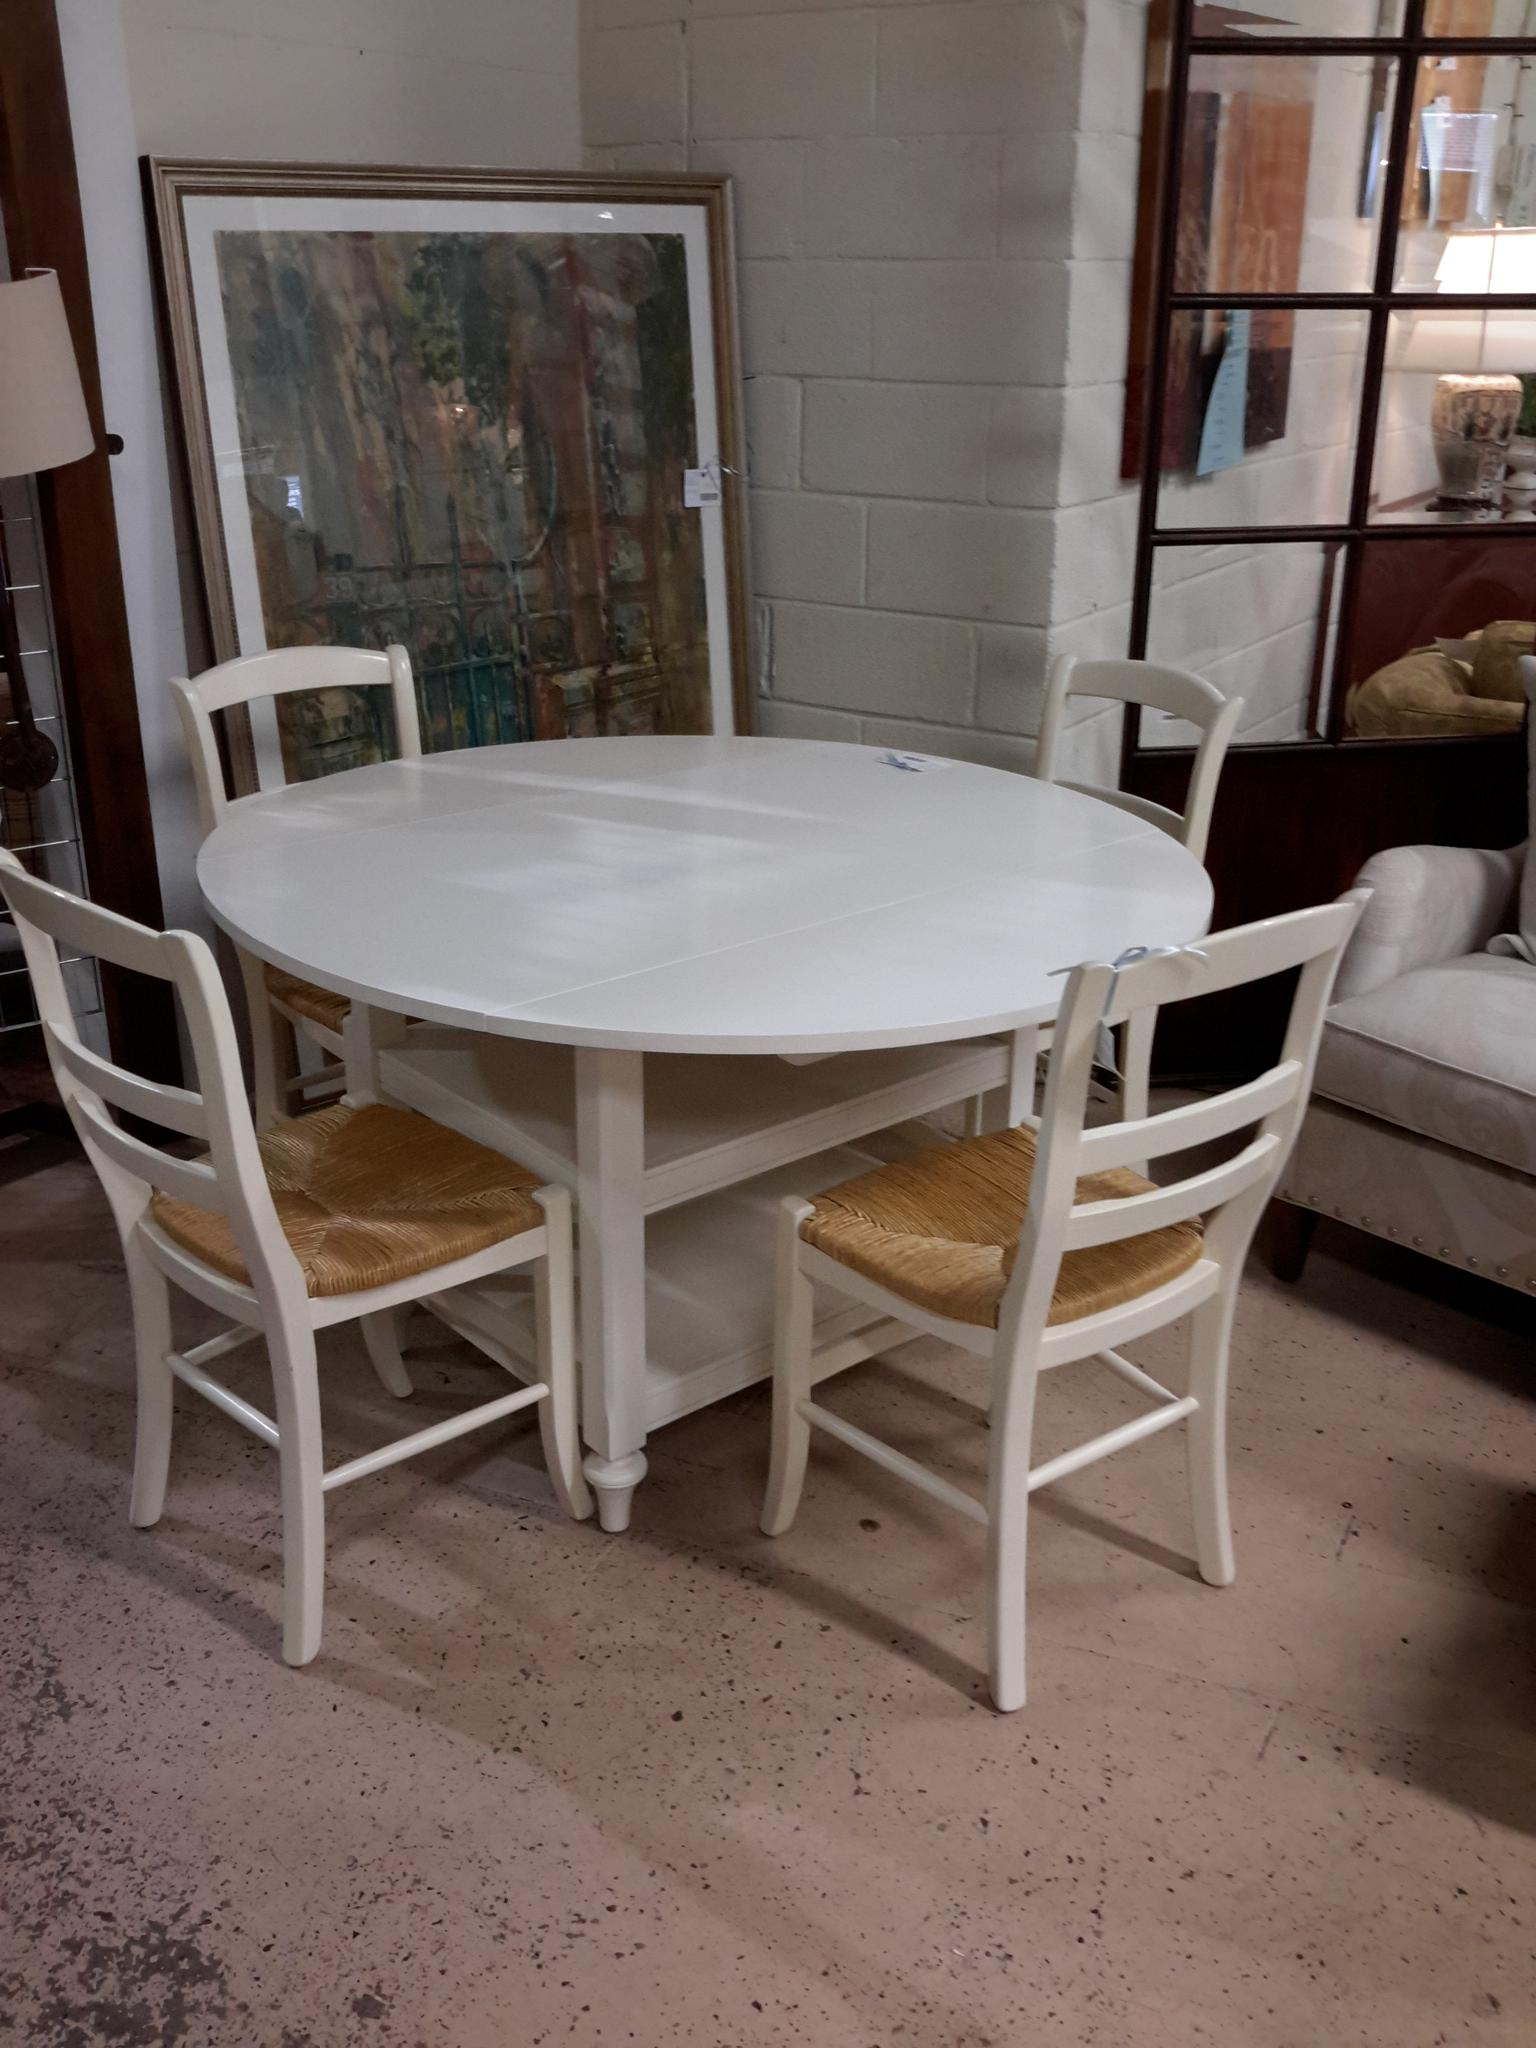 Pottery Barn Drop Leaf Table & 4 Chairs – The Millionaire's Inside Recent Mahogany Shayne Drop Leaf Kitchen Tables (View 14 of 25)